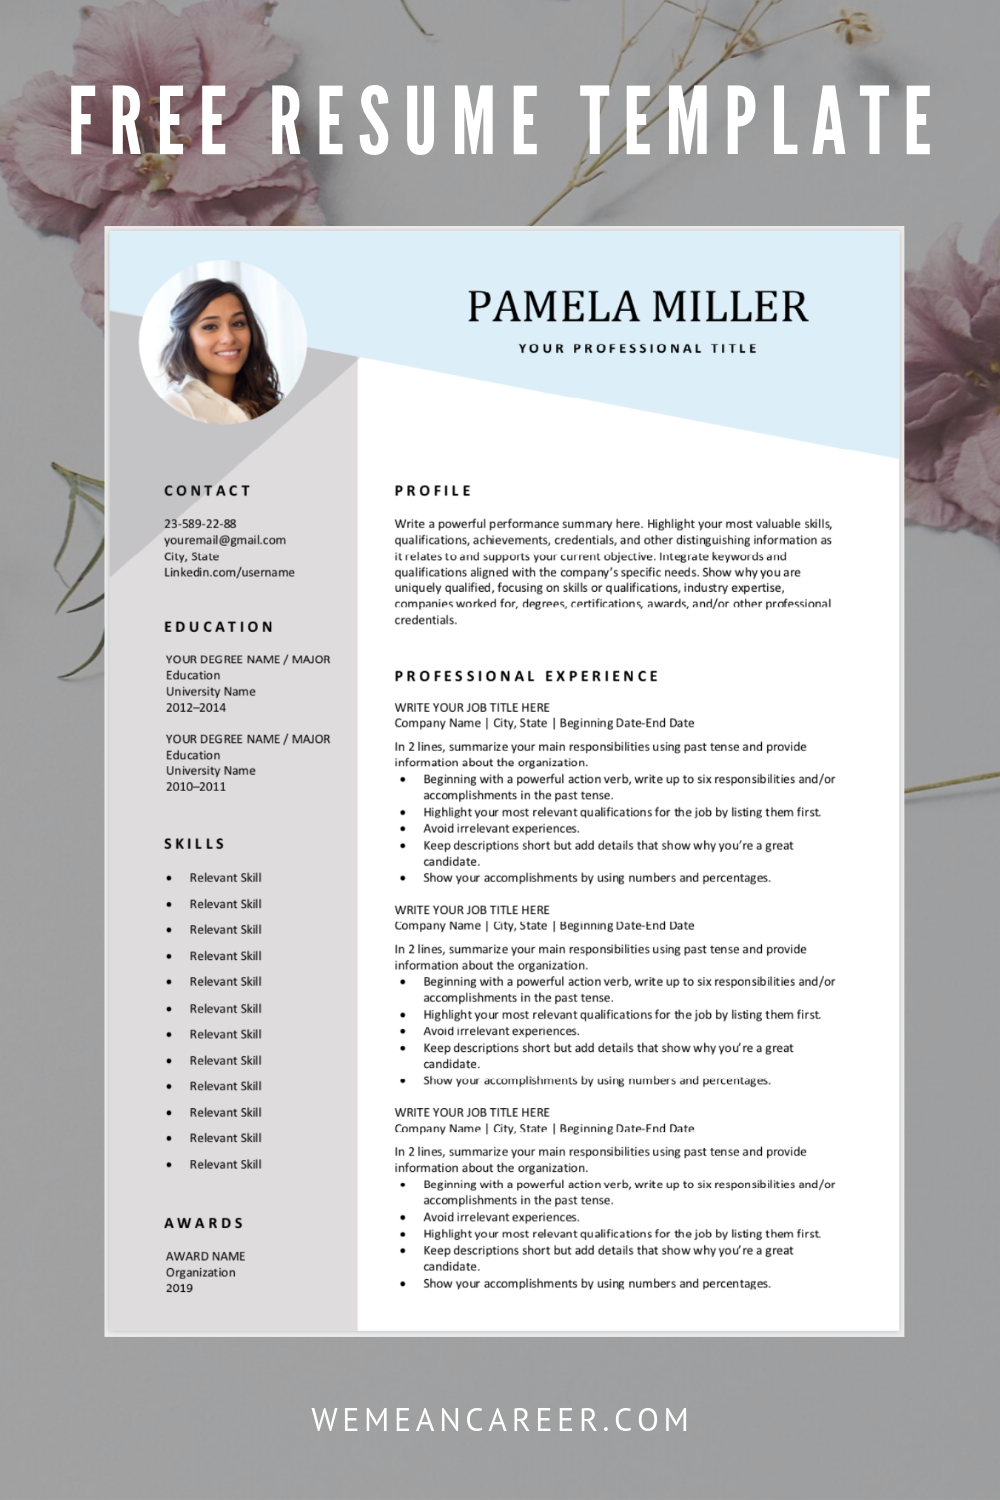 Looking For A Free Editable Resume Template Sign Up For Our Job Search Tips And Download Thi In 2020 Resume Template Downloadable Resume Template Job Resume Template